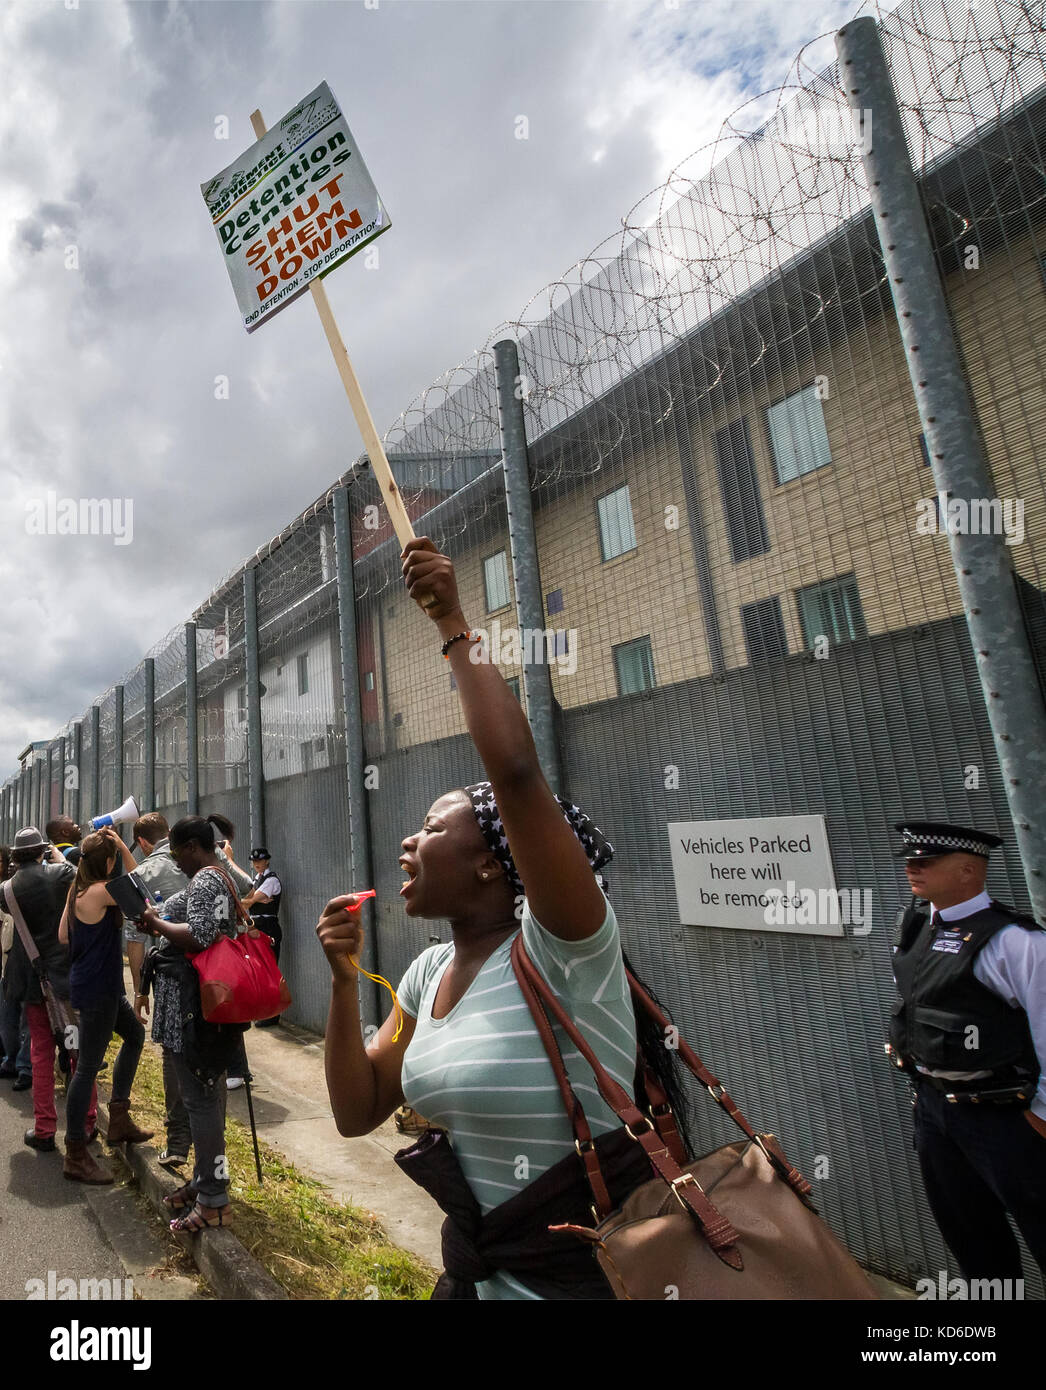 Protest to Shut Down Harmondsworth Immigration Removal Centre in Middlesex, UK. - Stock Image